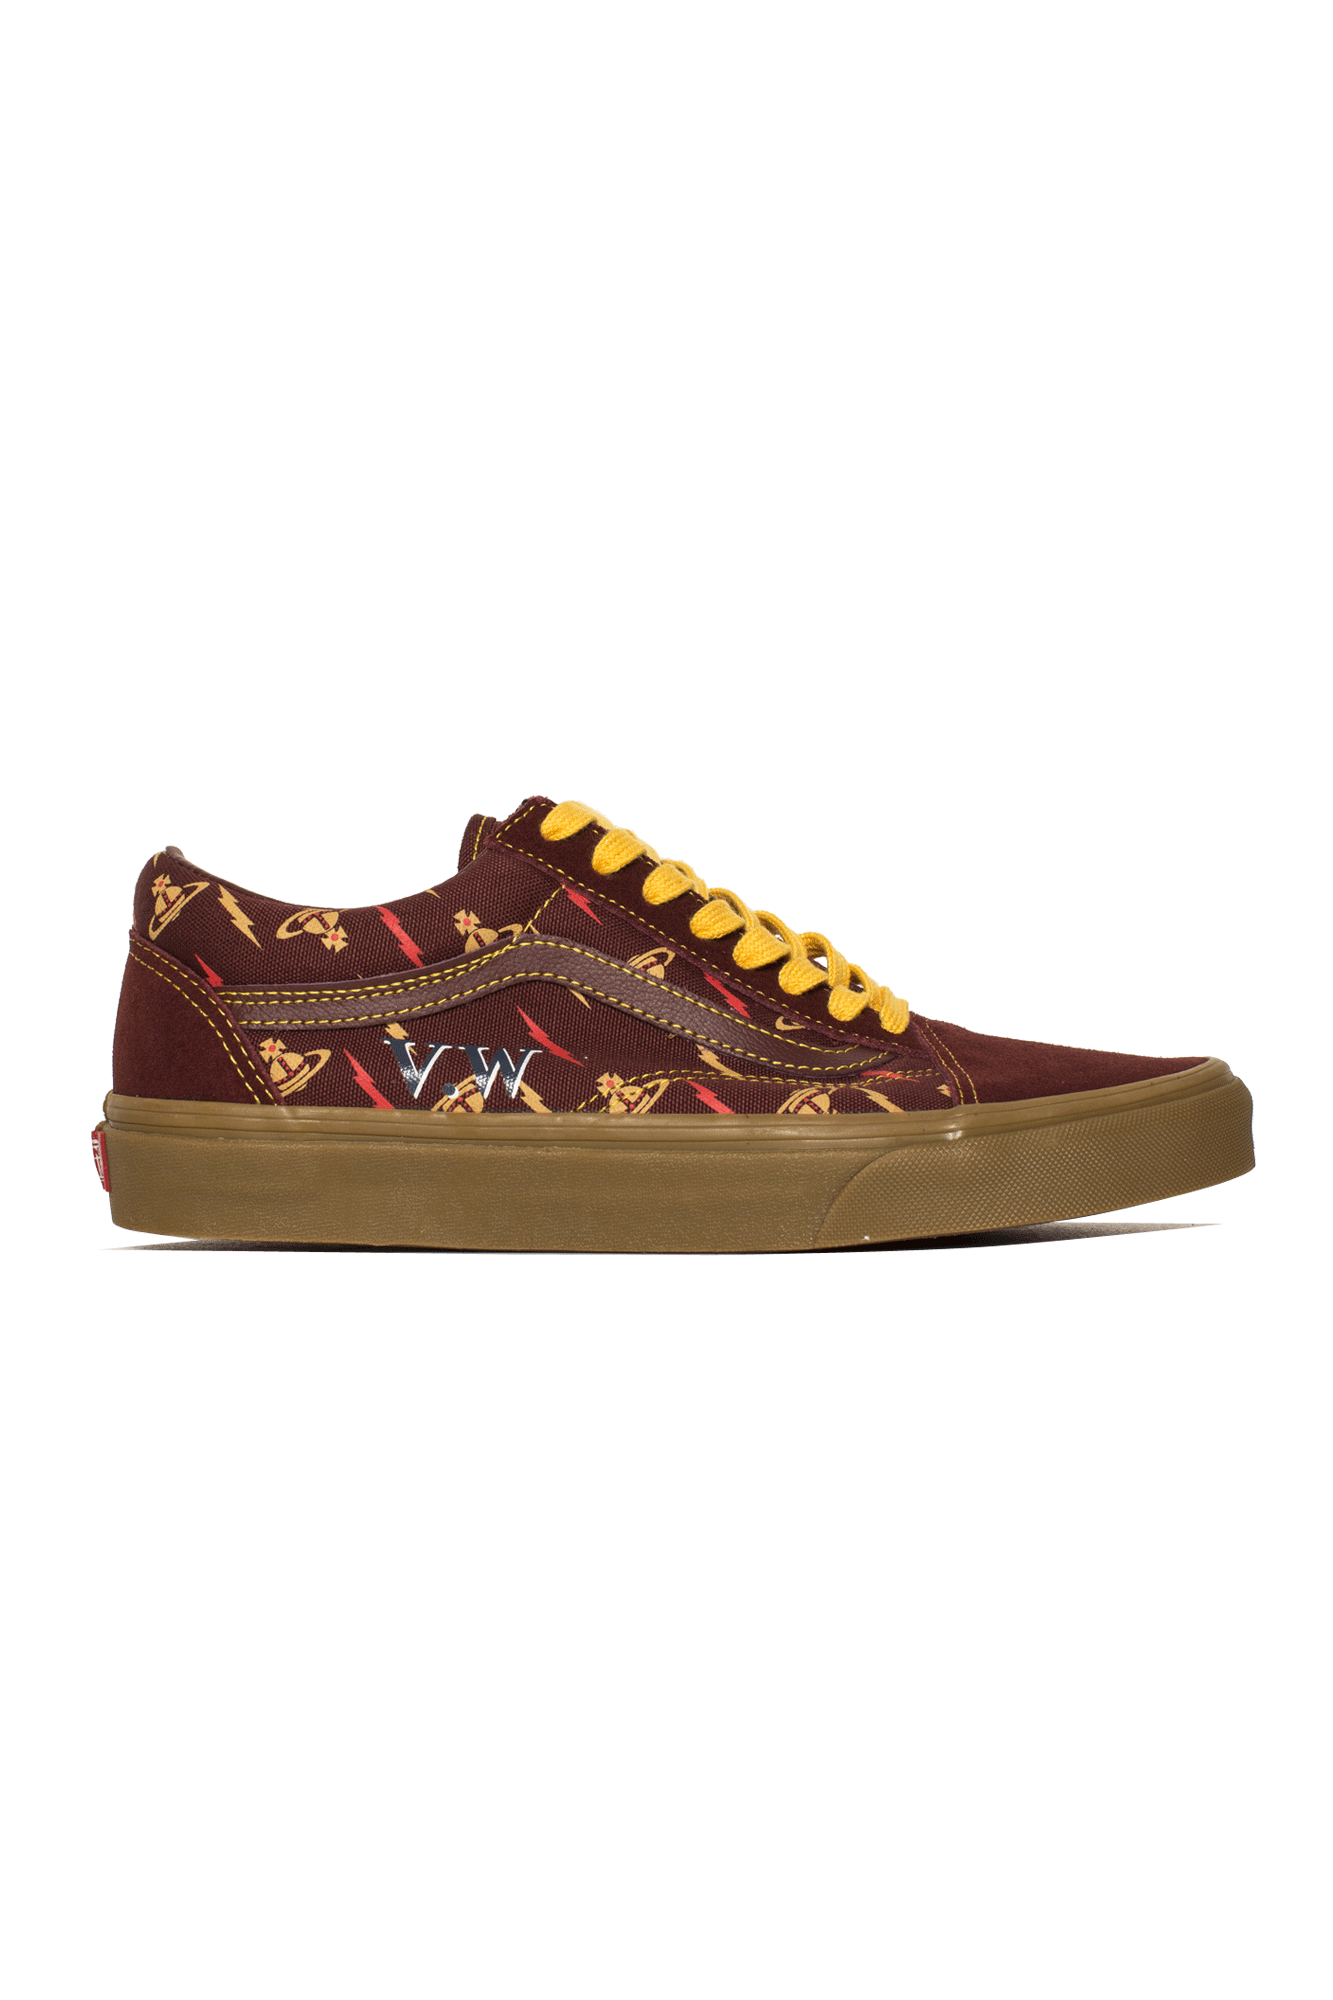 Vans Sneakers Old Skool by Vivienne Westwood Brown VN0A4BV5#000#VZP1#5 - One Block Down